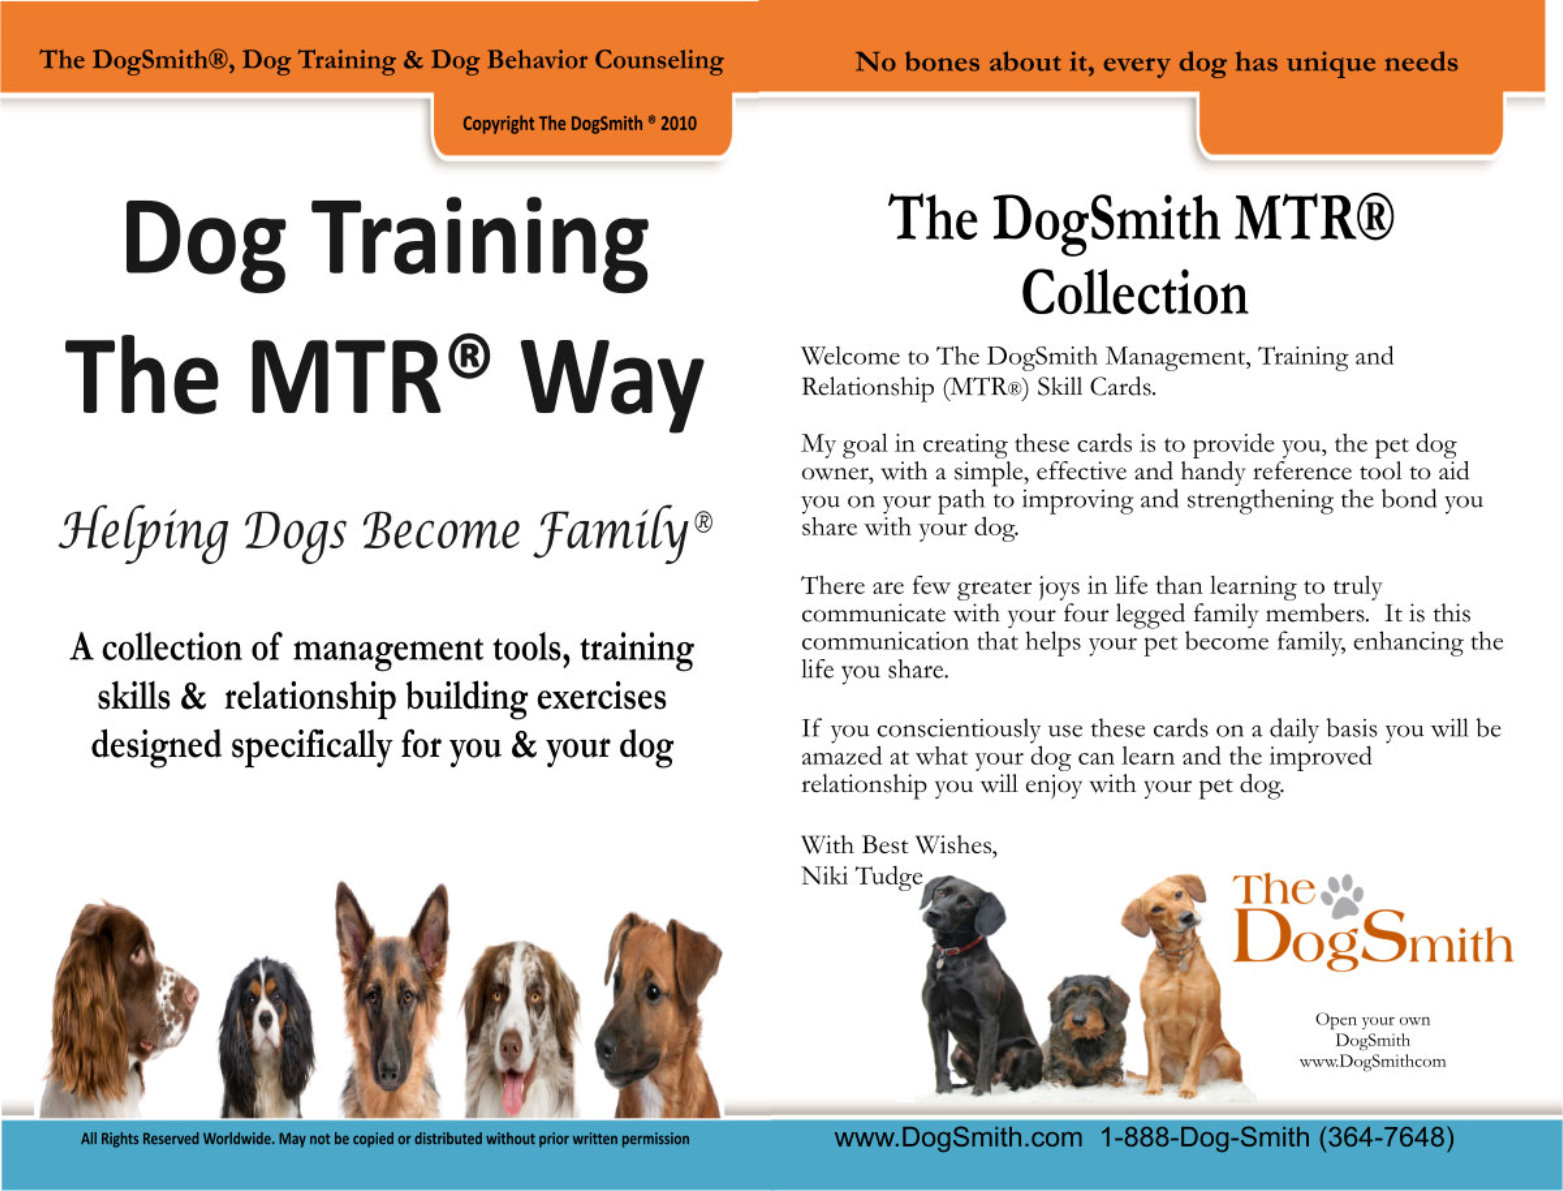 The DogSmith MTR System